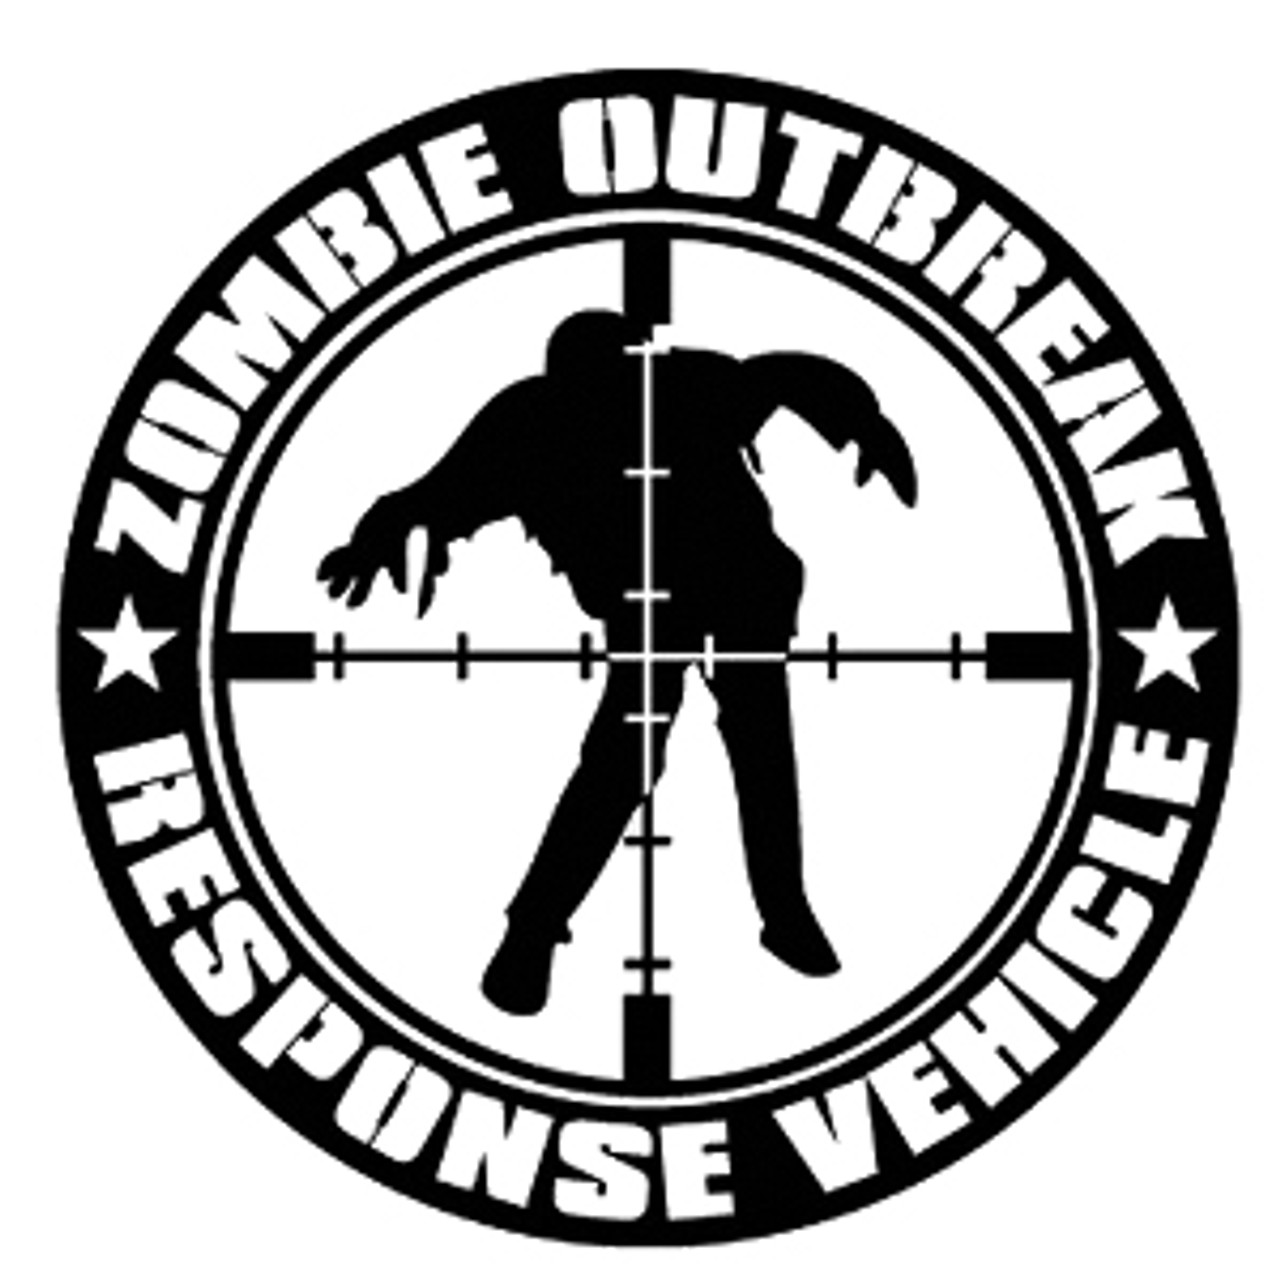 Zombie Outbreak Response Vehicle Decal